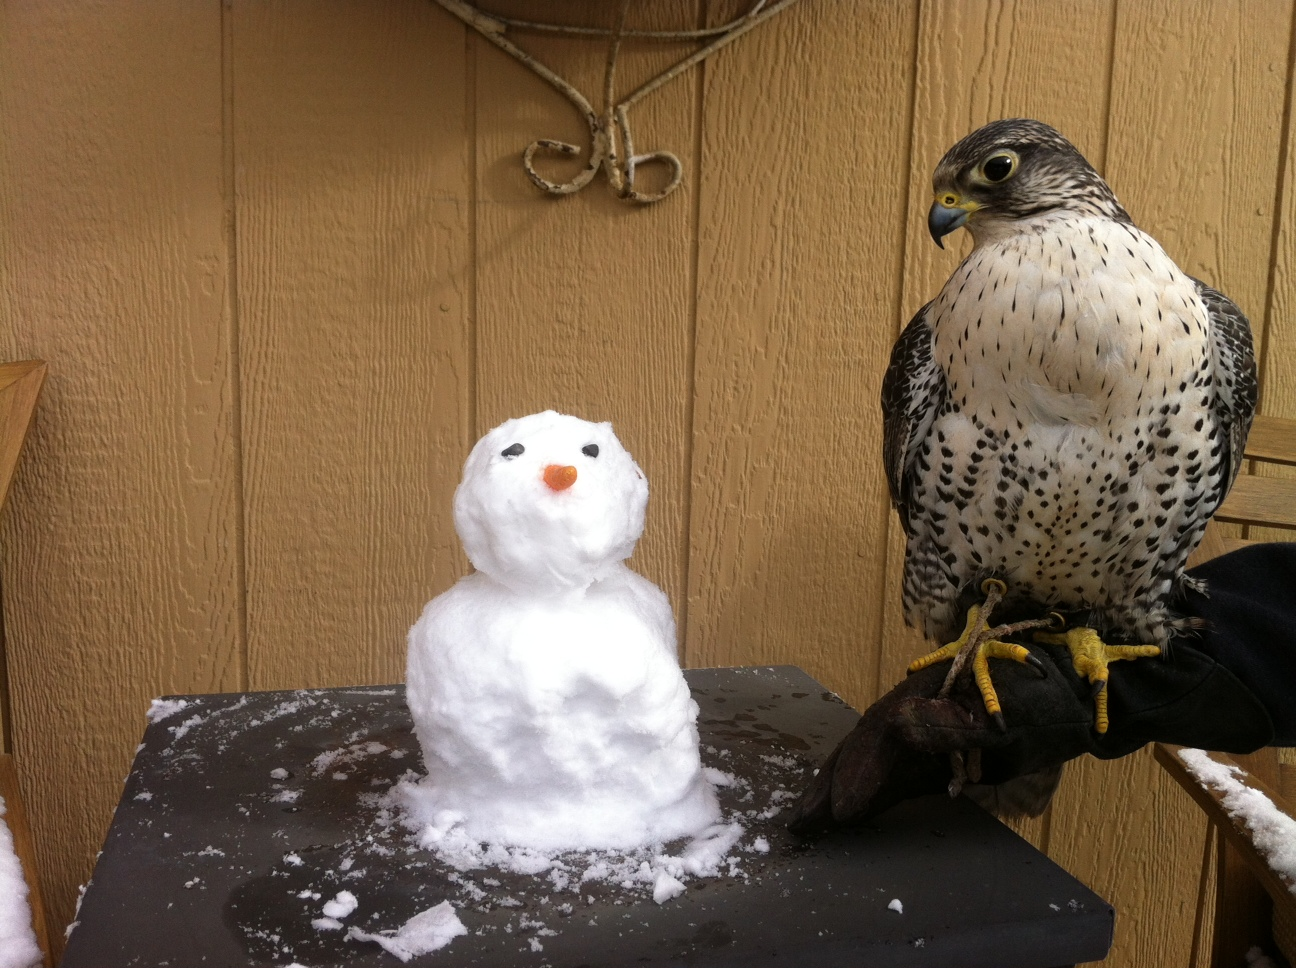 The_Snowman_and_the_Falcon_2014.JPG